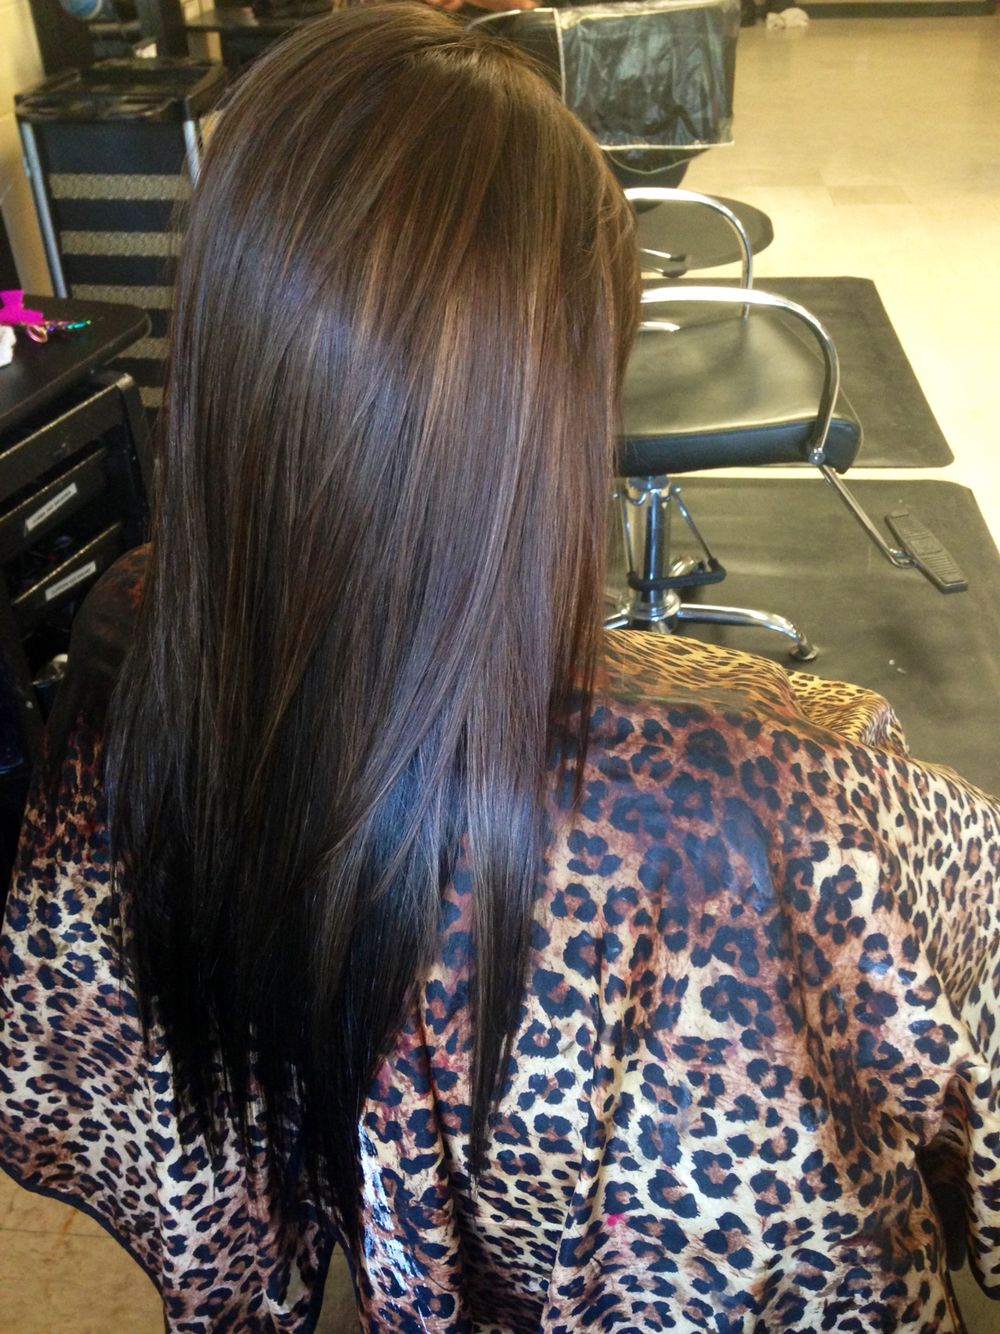 Black Underneath With Golden Brown And Carmel Highlights On Top Brunette Hair Color Hair Styles Long Hair Styles